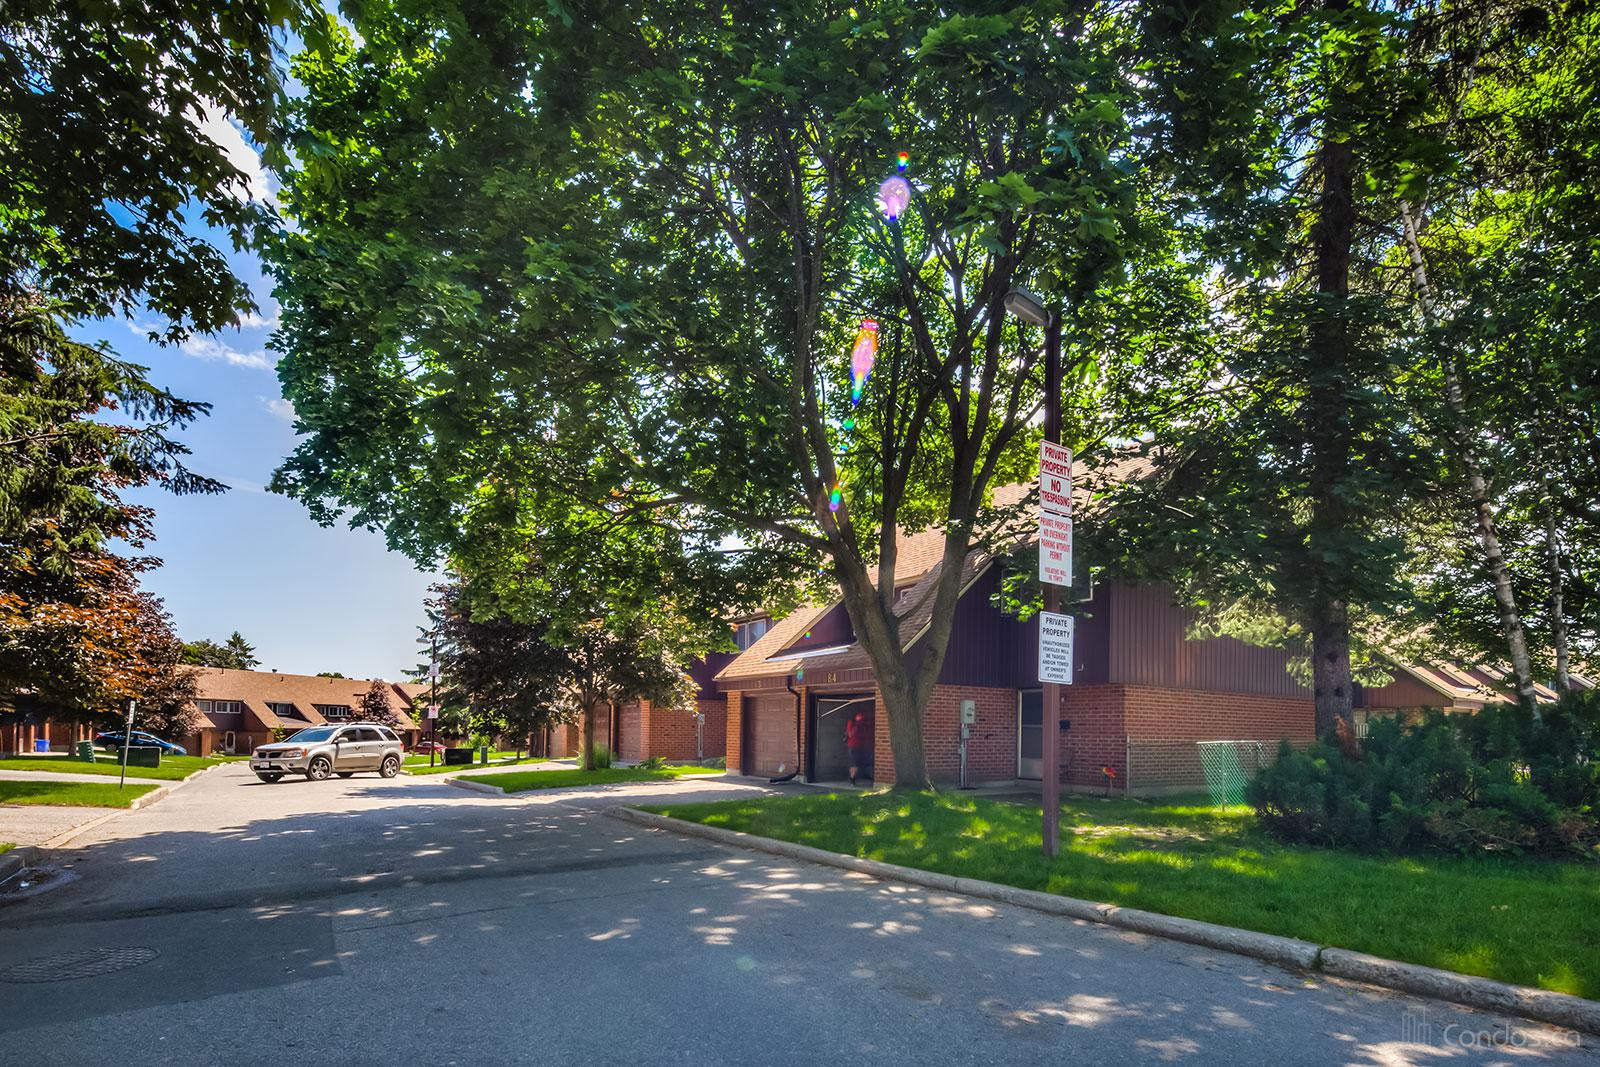 Barrie Road Condos at 441 Barrie Rd, Orillia 1